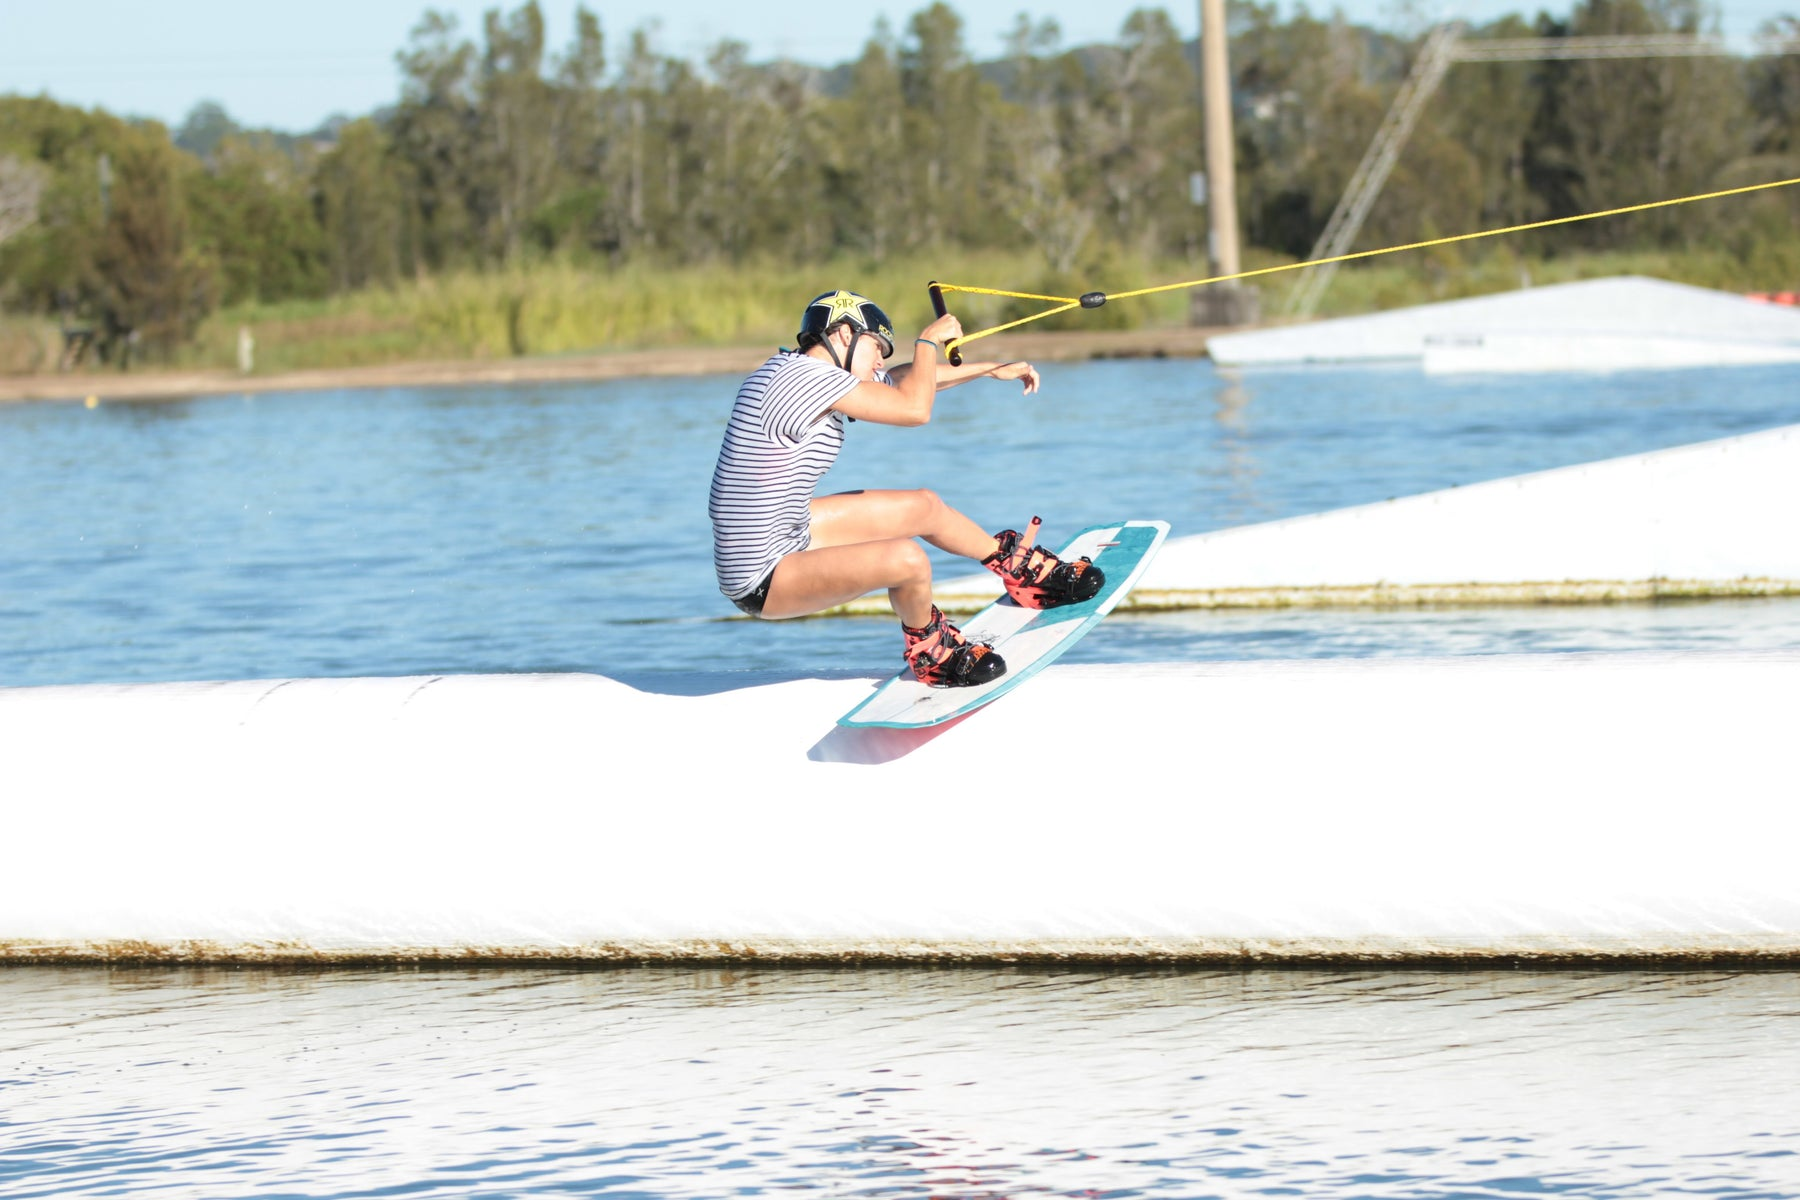 New Features for the Wake Park